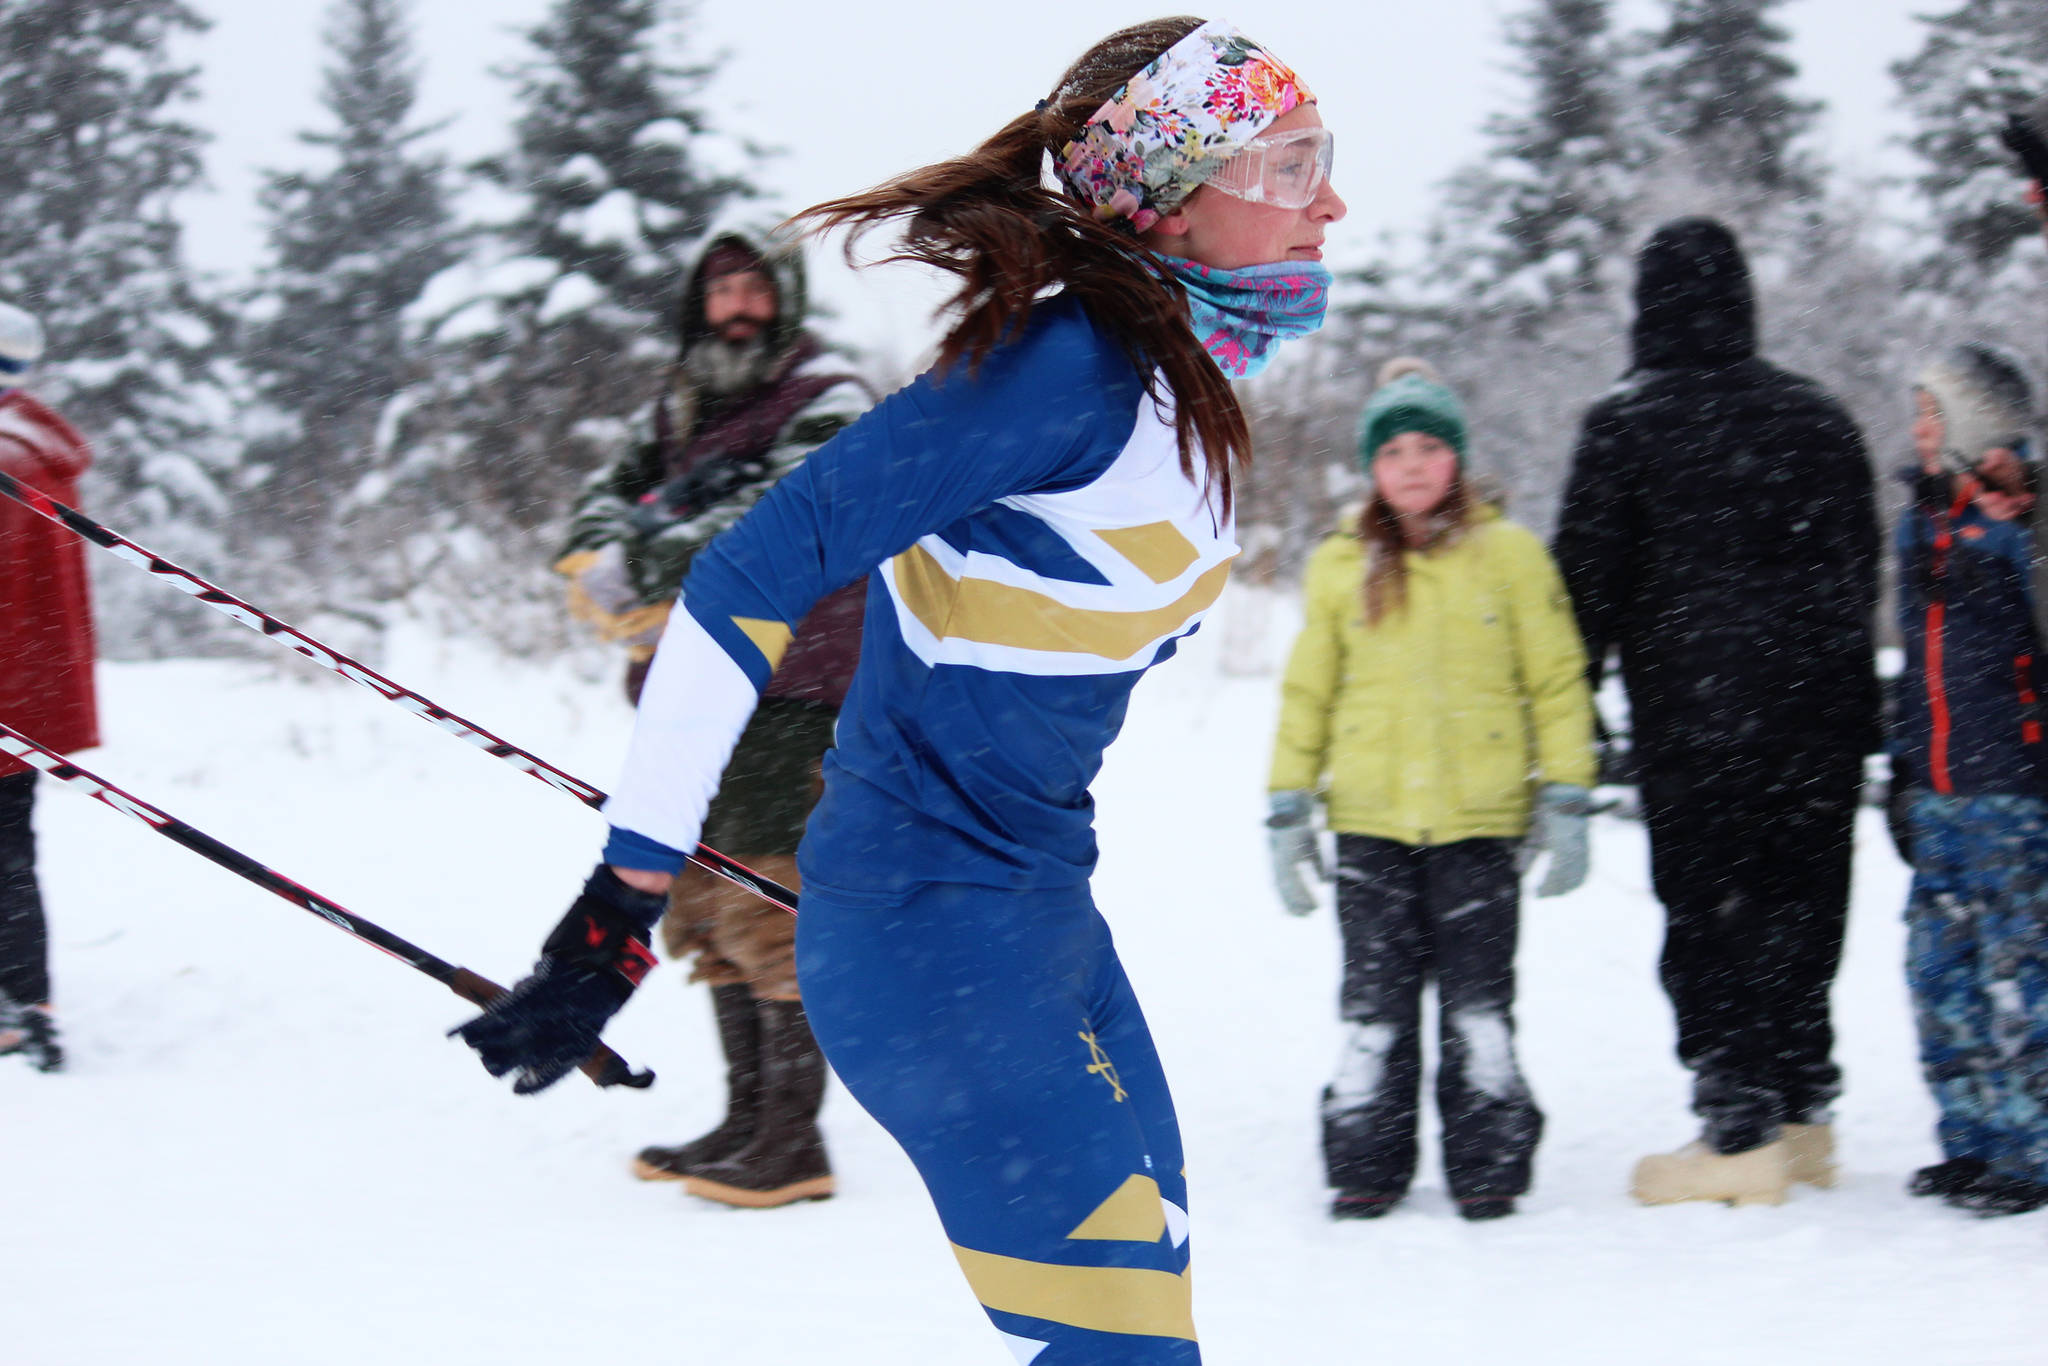 Homer junior Autumn Daigle breezes across the finish line to take first place in the girls' race at a Homer-hosted ski meet Friday, Dec. 14, 2018 at the Ohlson Mountain Trails near Homer, Alaska. The meet was moved to Homer after it was decided the Tsalteshi Trails system in Soldotna didn't have enough snow. (Photo by Megan Pacer/Homer News)